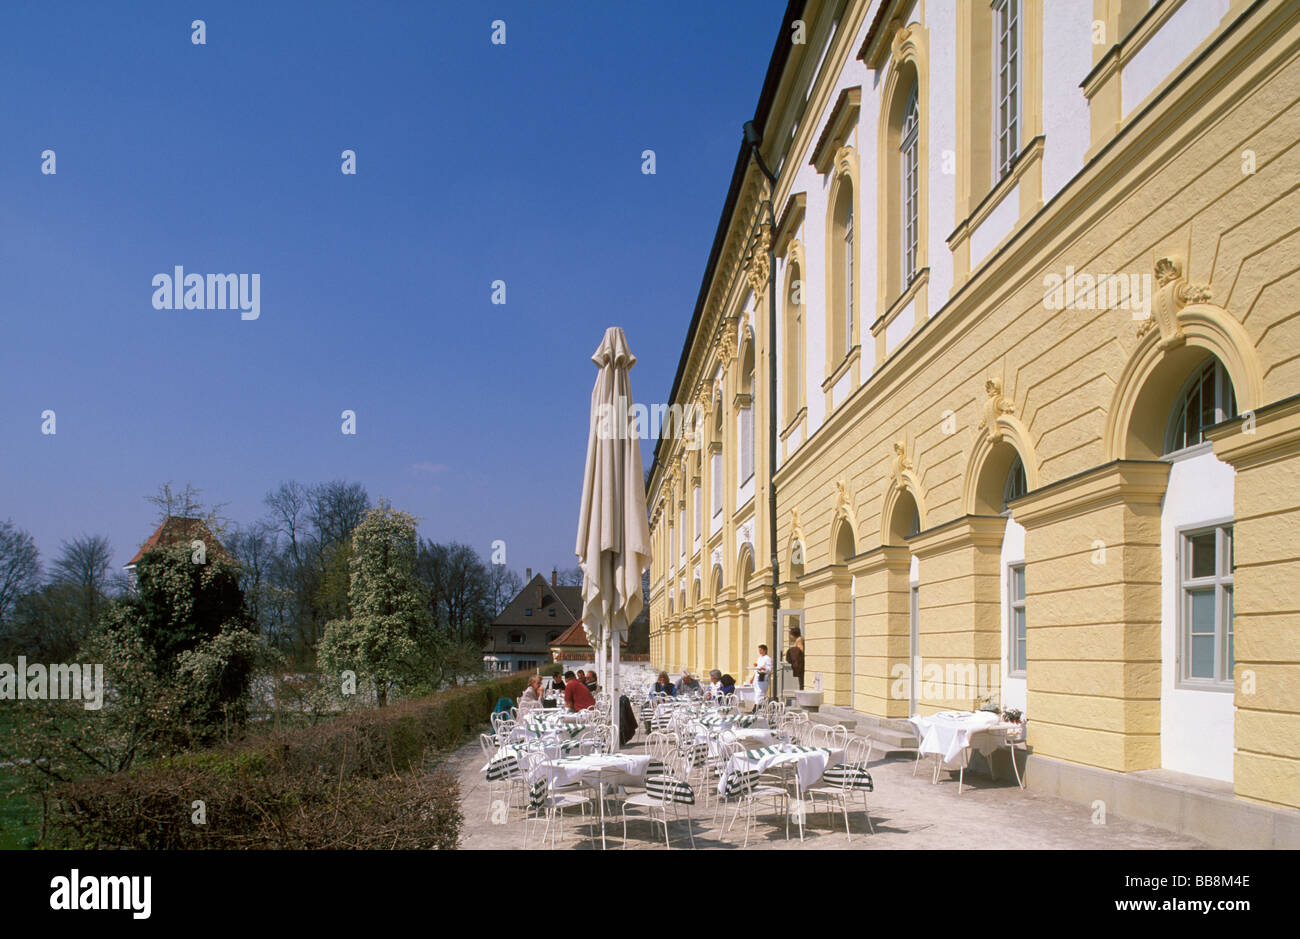 Page 2 Schloss Cafe High Resolution Stock Photography And Images Alamy